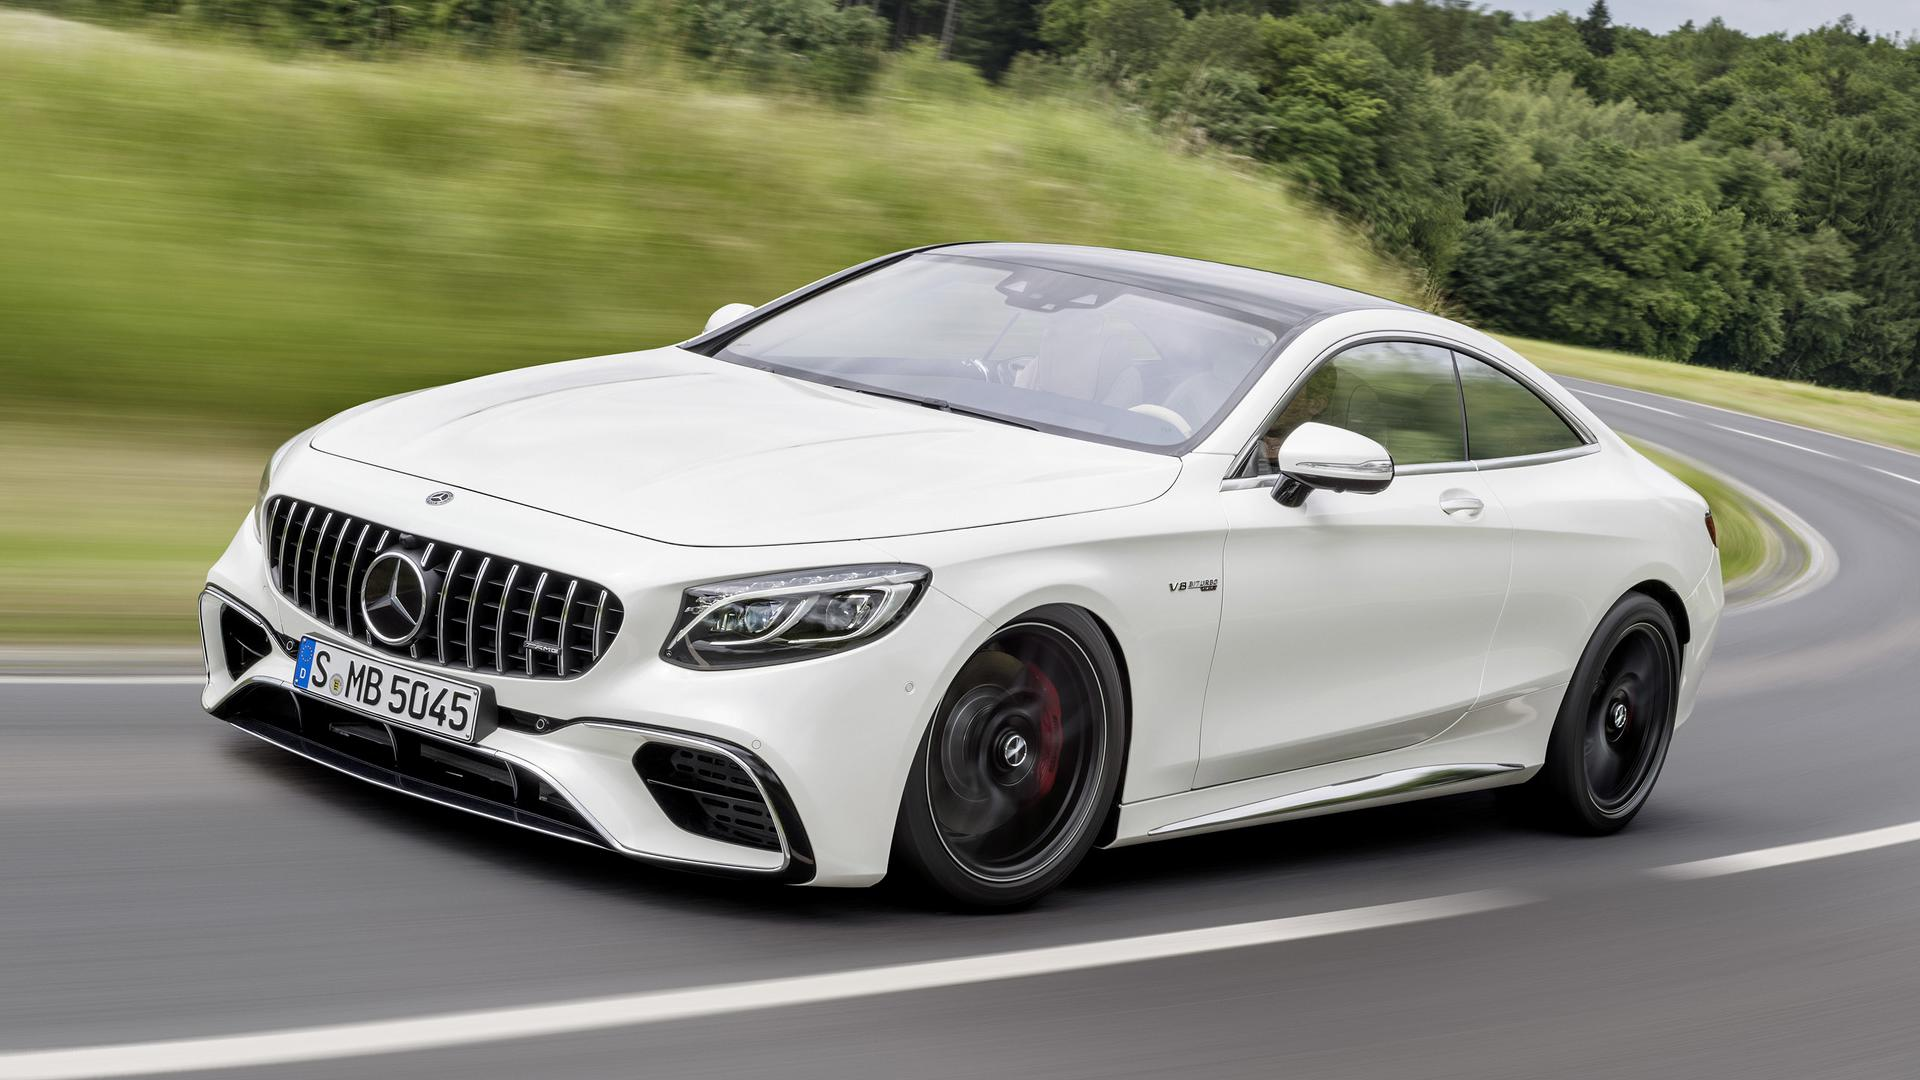 Mercedes benz s class coupe reveals its frankfurt facelift for Mercedes benz s class coupe